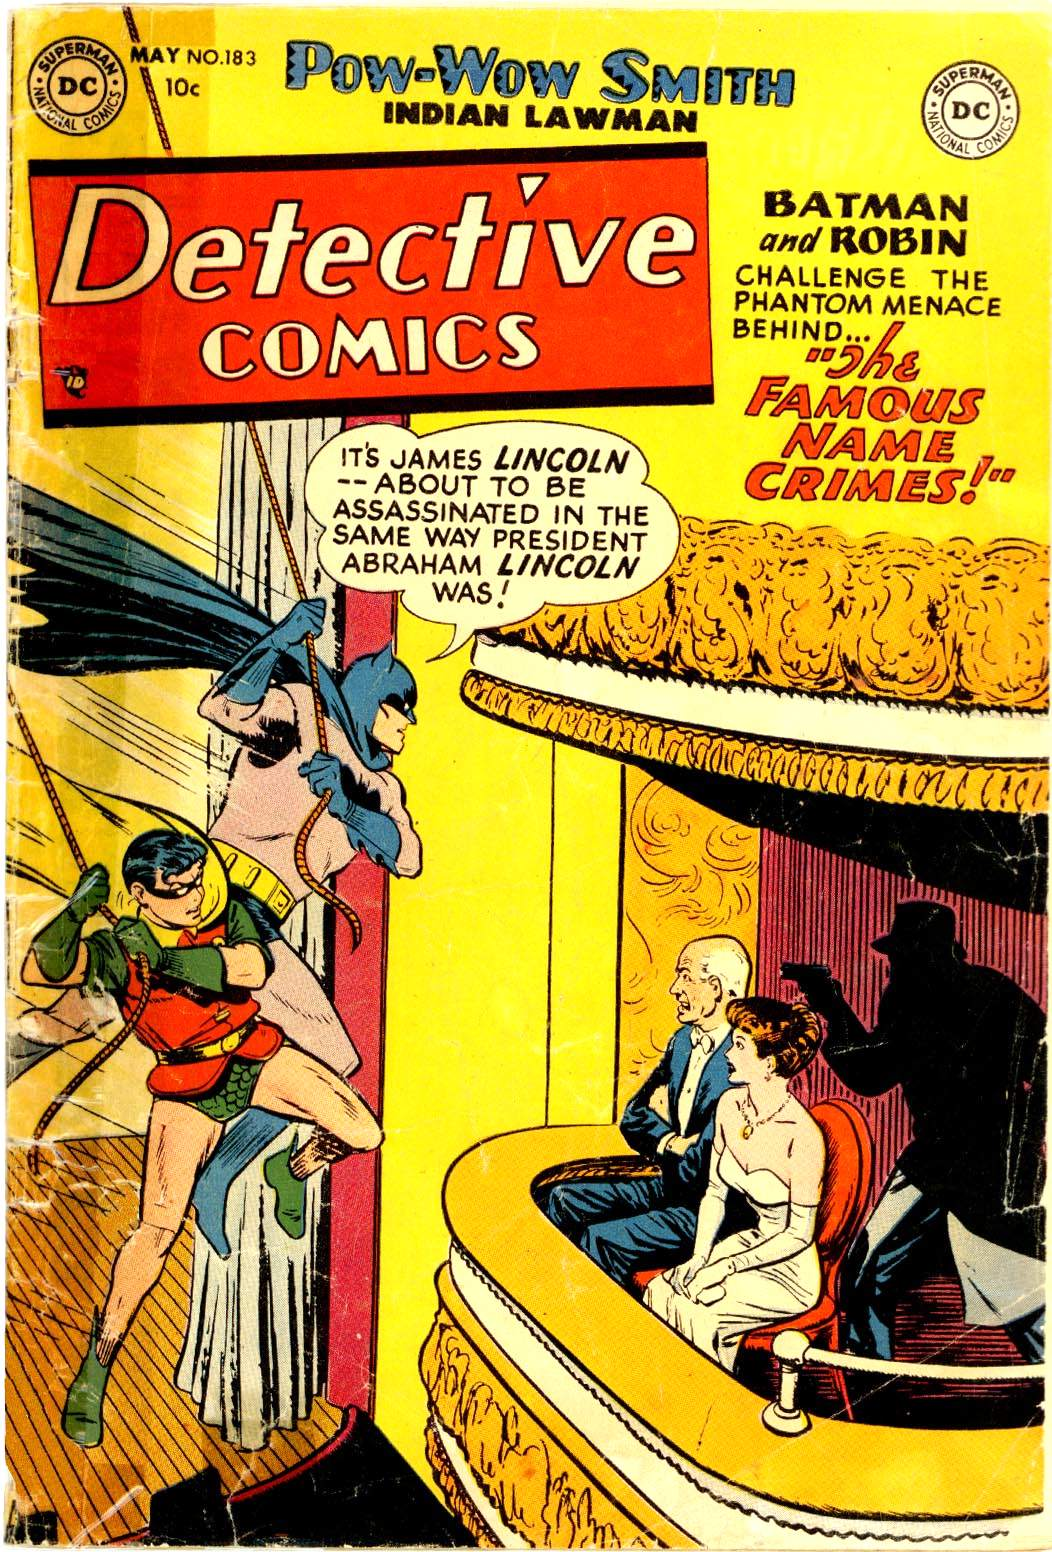 Read online Detective Comics (1937) comic -  Issue #183 - 1